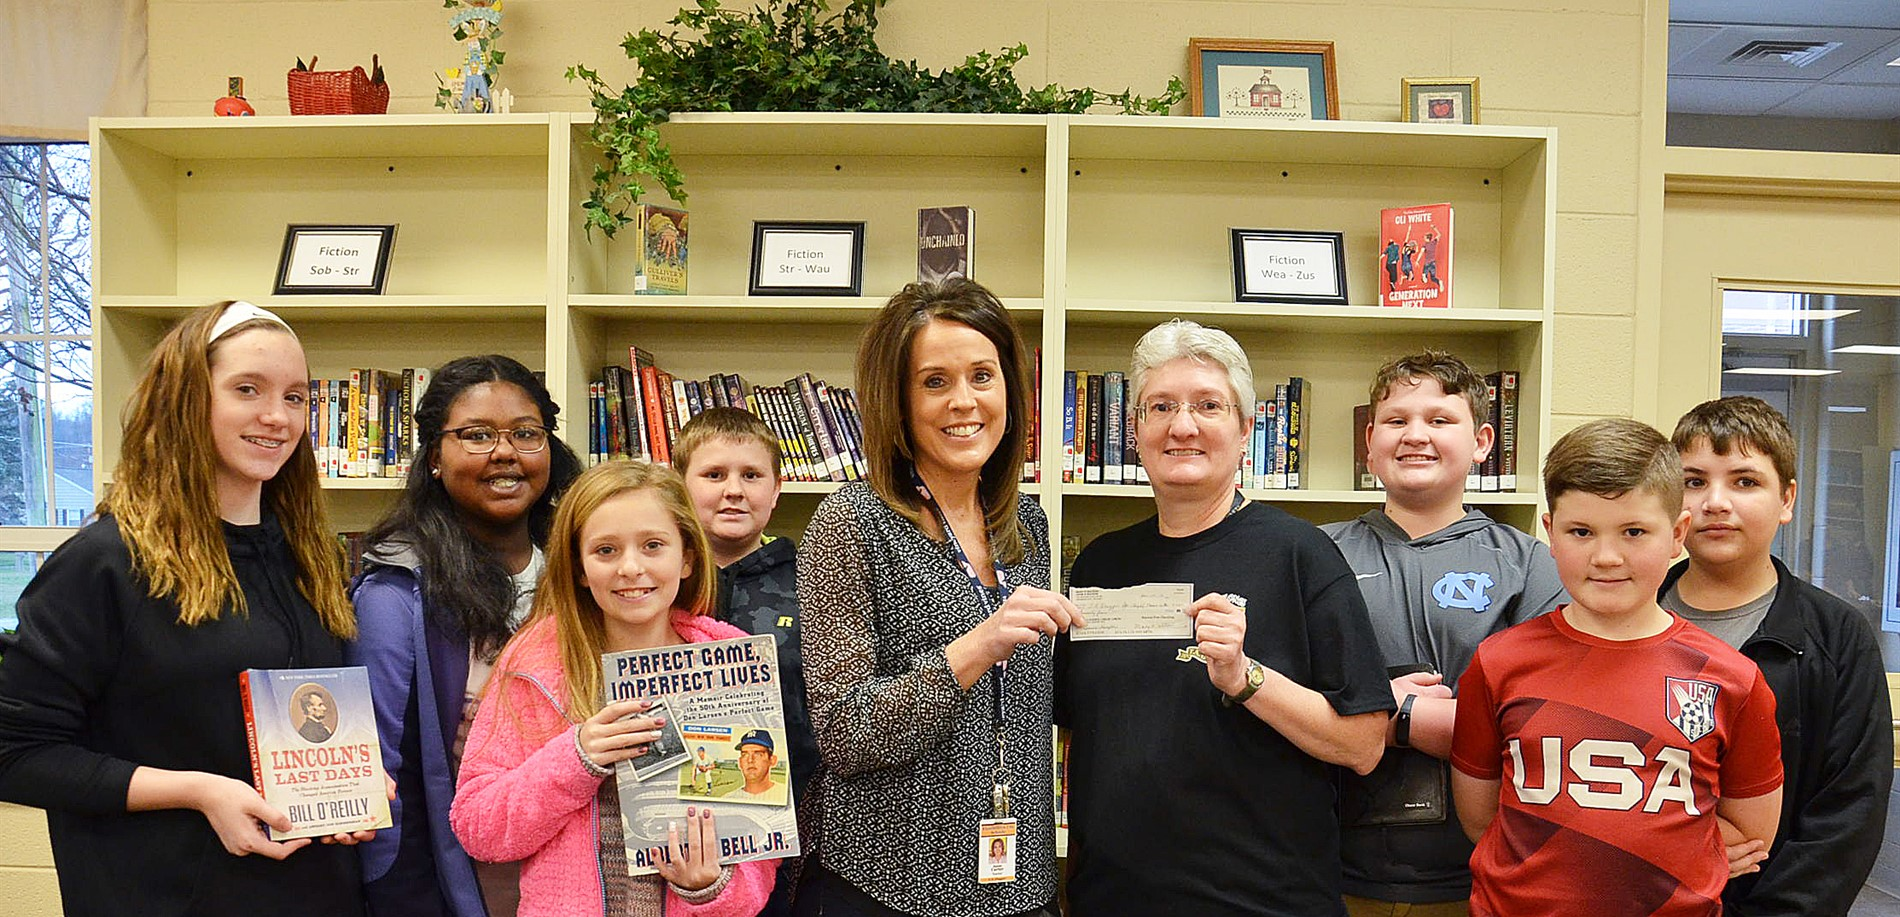 Penny Hampton donates to Library